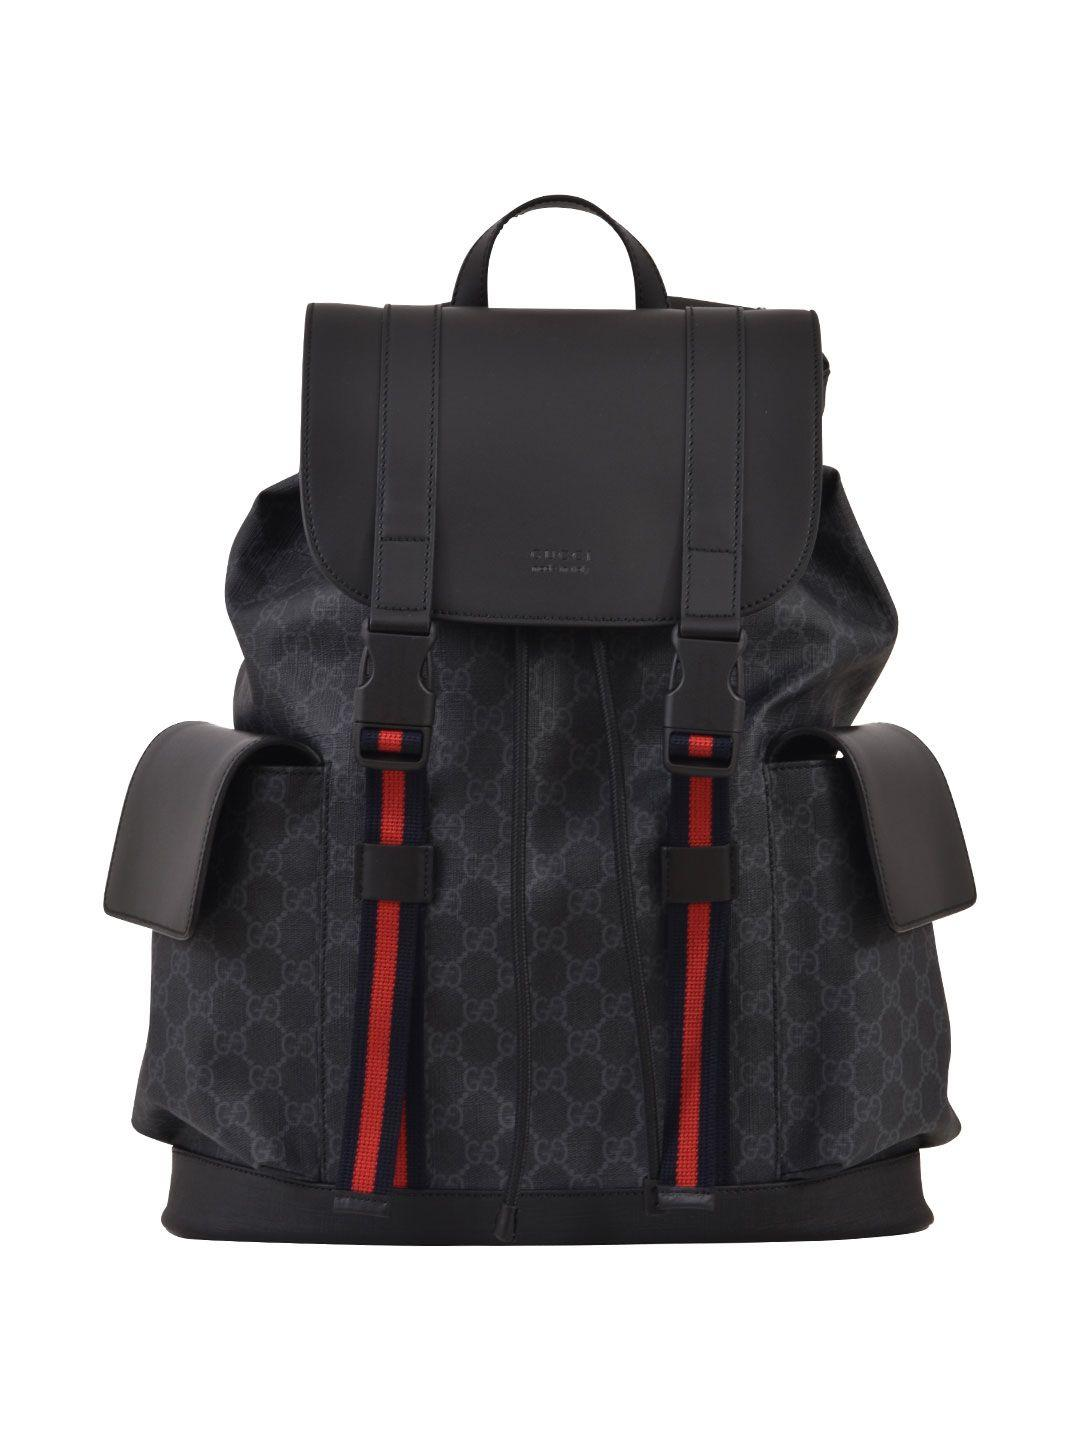 Gucci Gg Supreme Backpack In Black